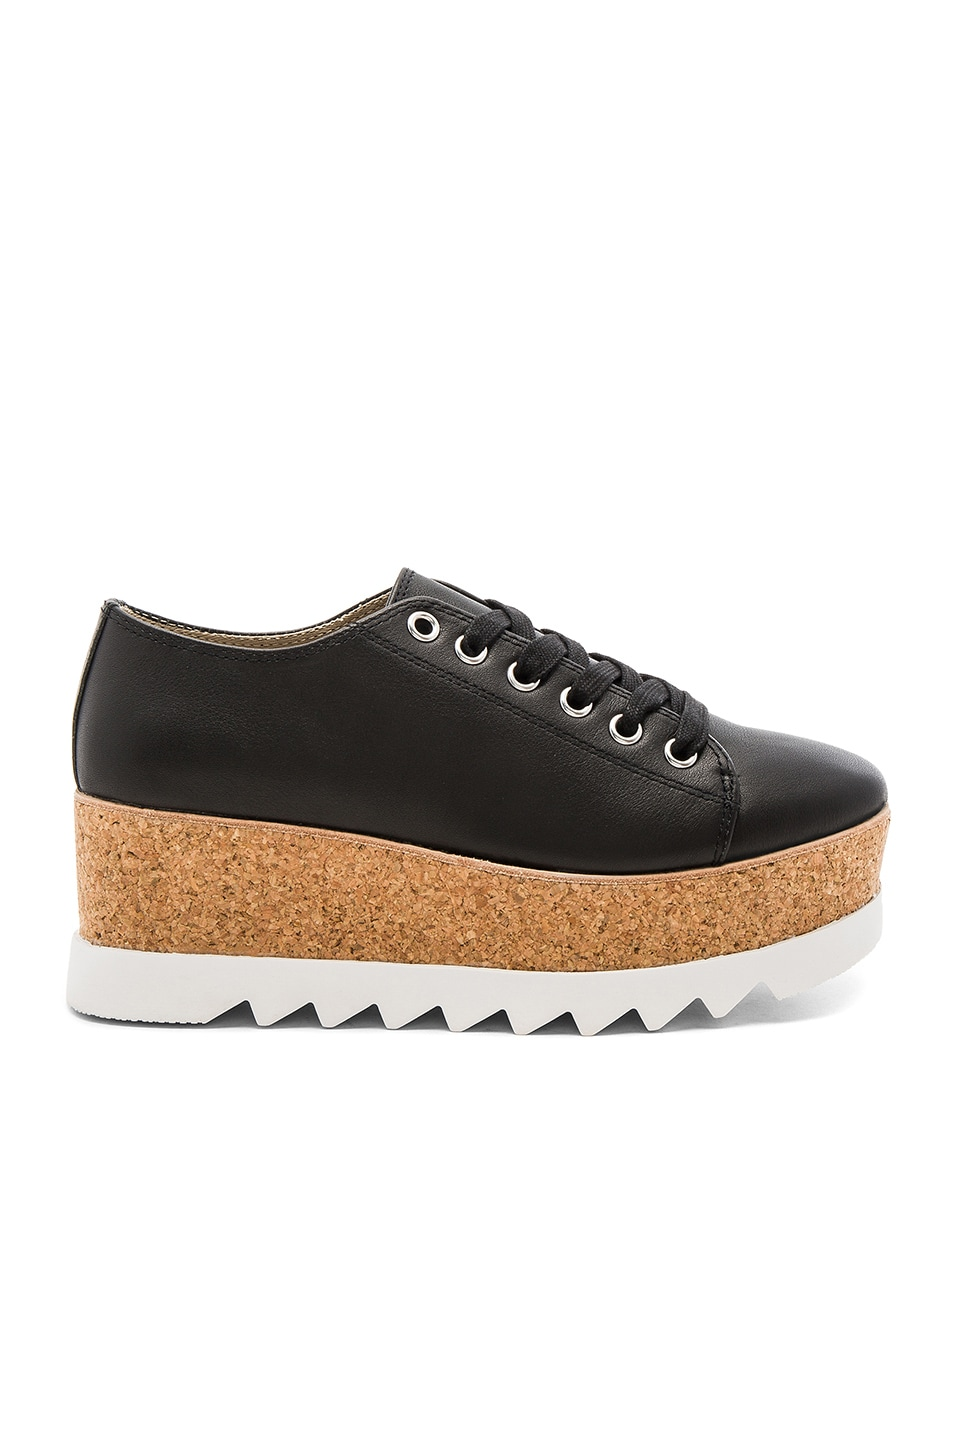 Steve Madden Korrie Sneaker in Black Leather